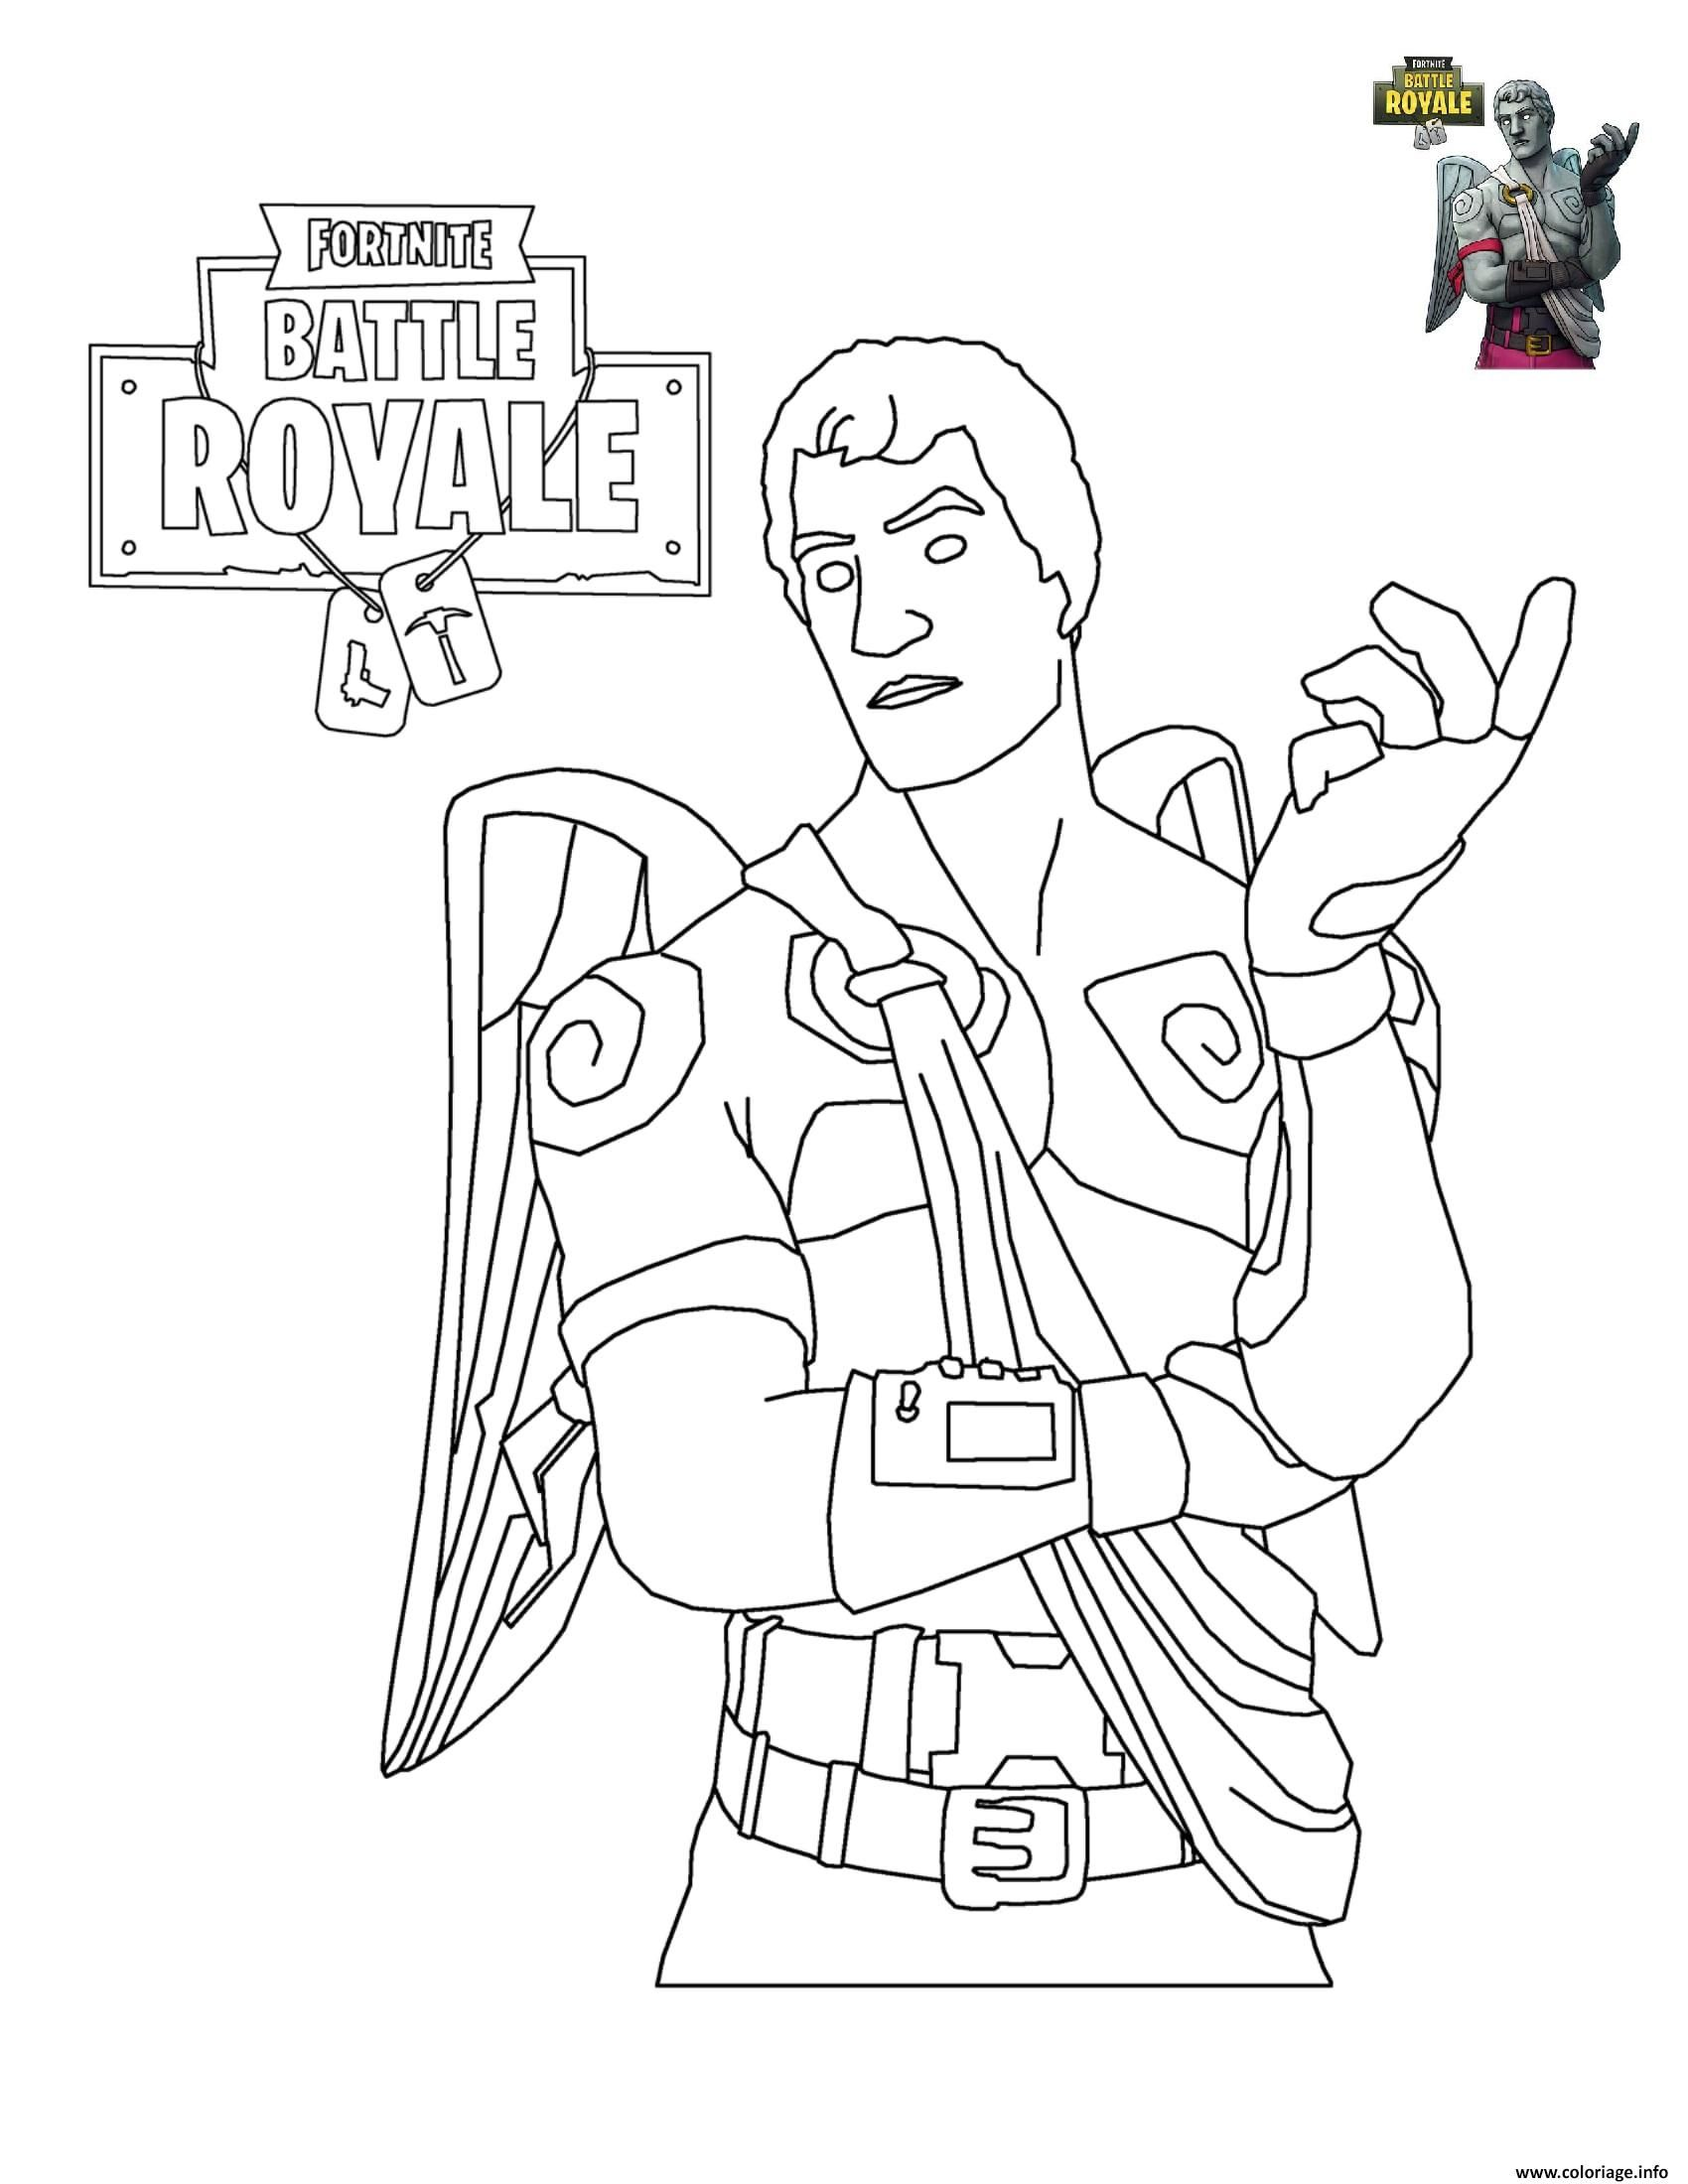 Coloriage Fortnite Battle Royale Personnage 6 à Imprimer